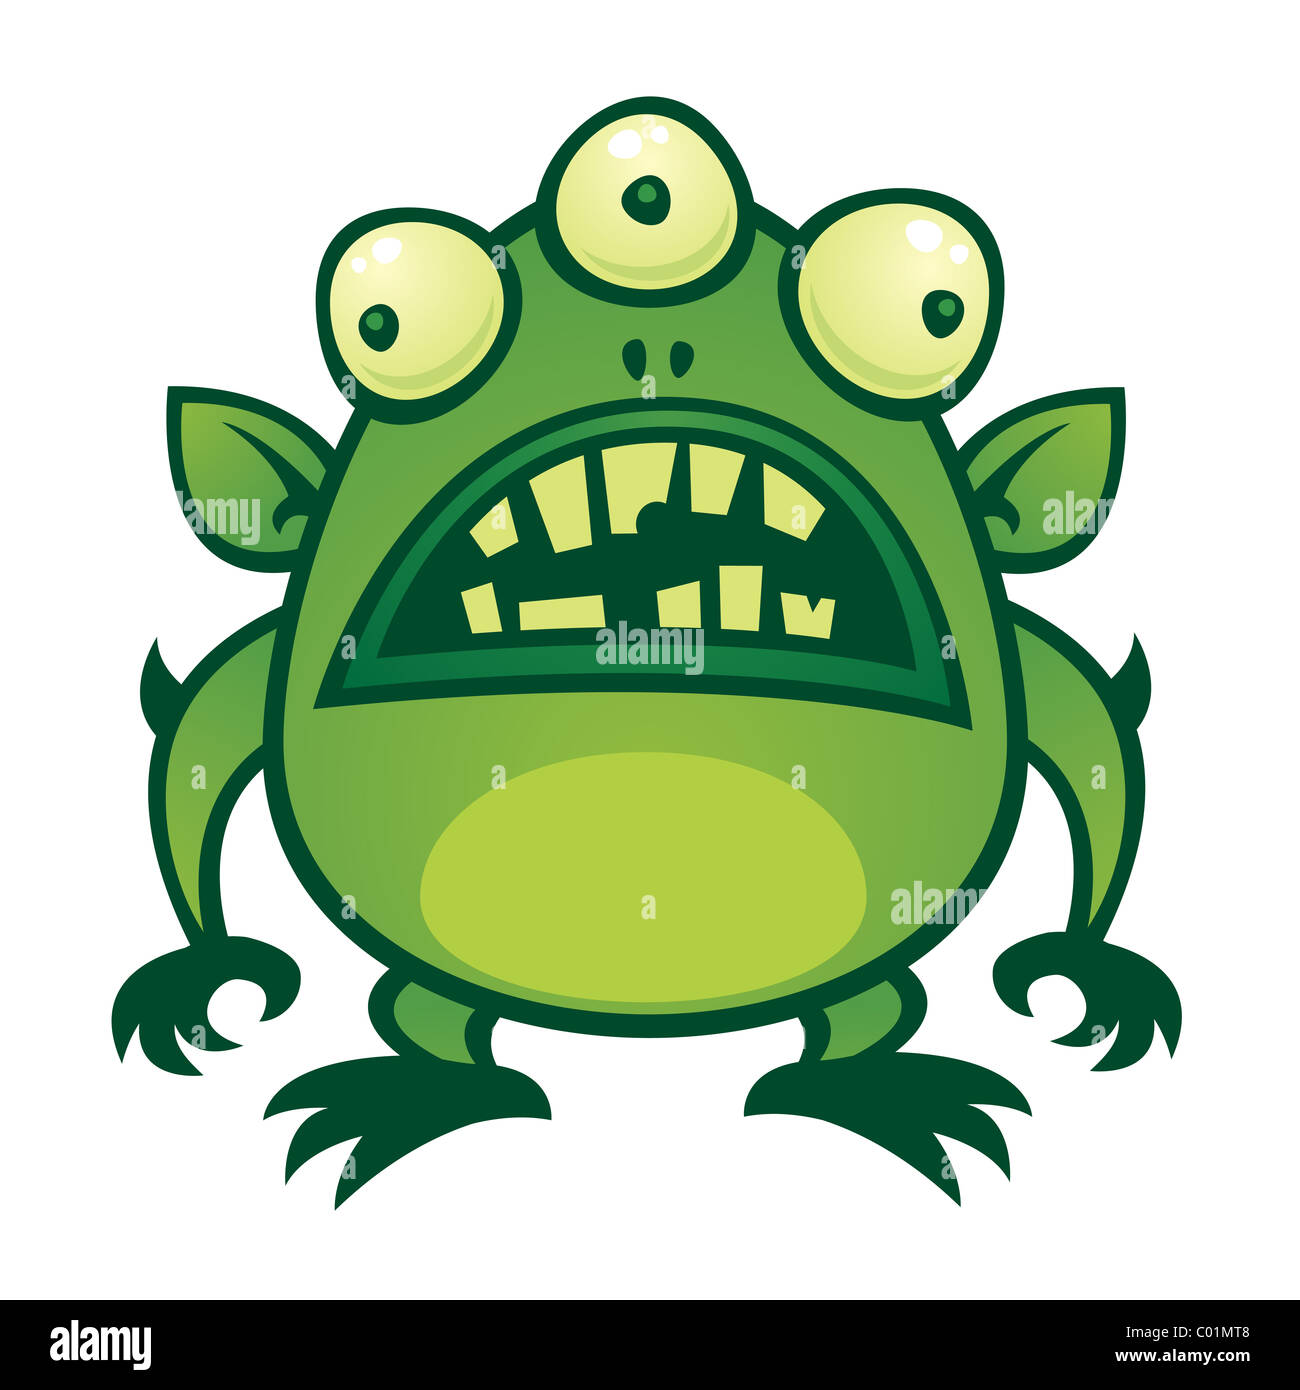 Vector cartoon illustration of an ugly green alien monster with three eyes. - Stock Image